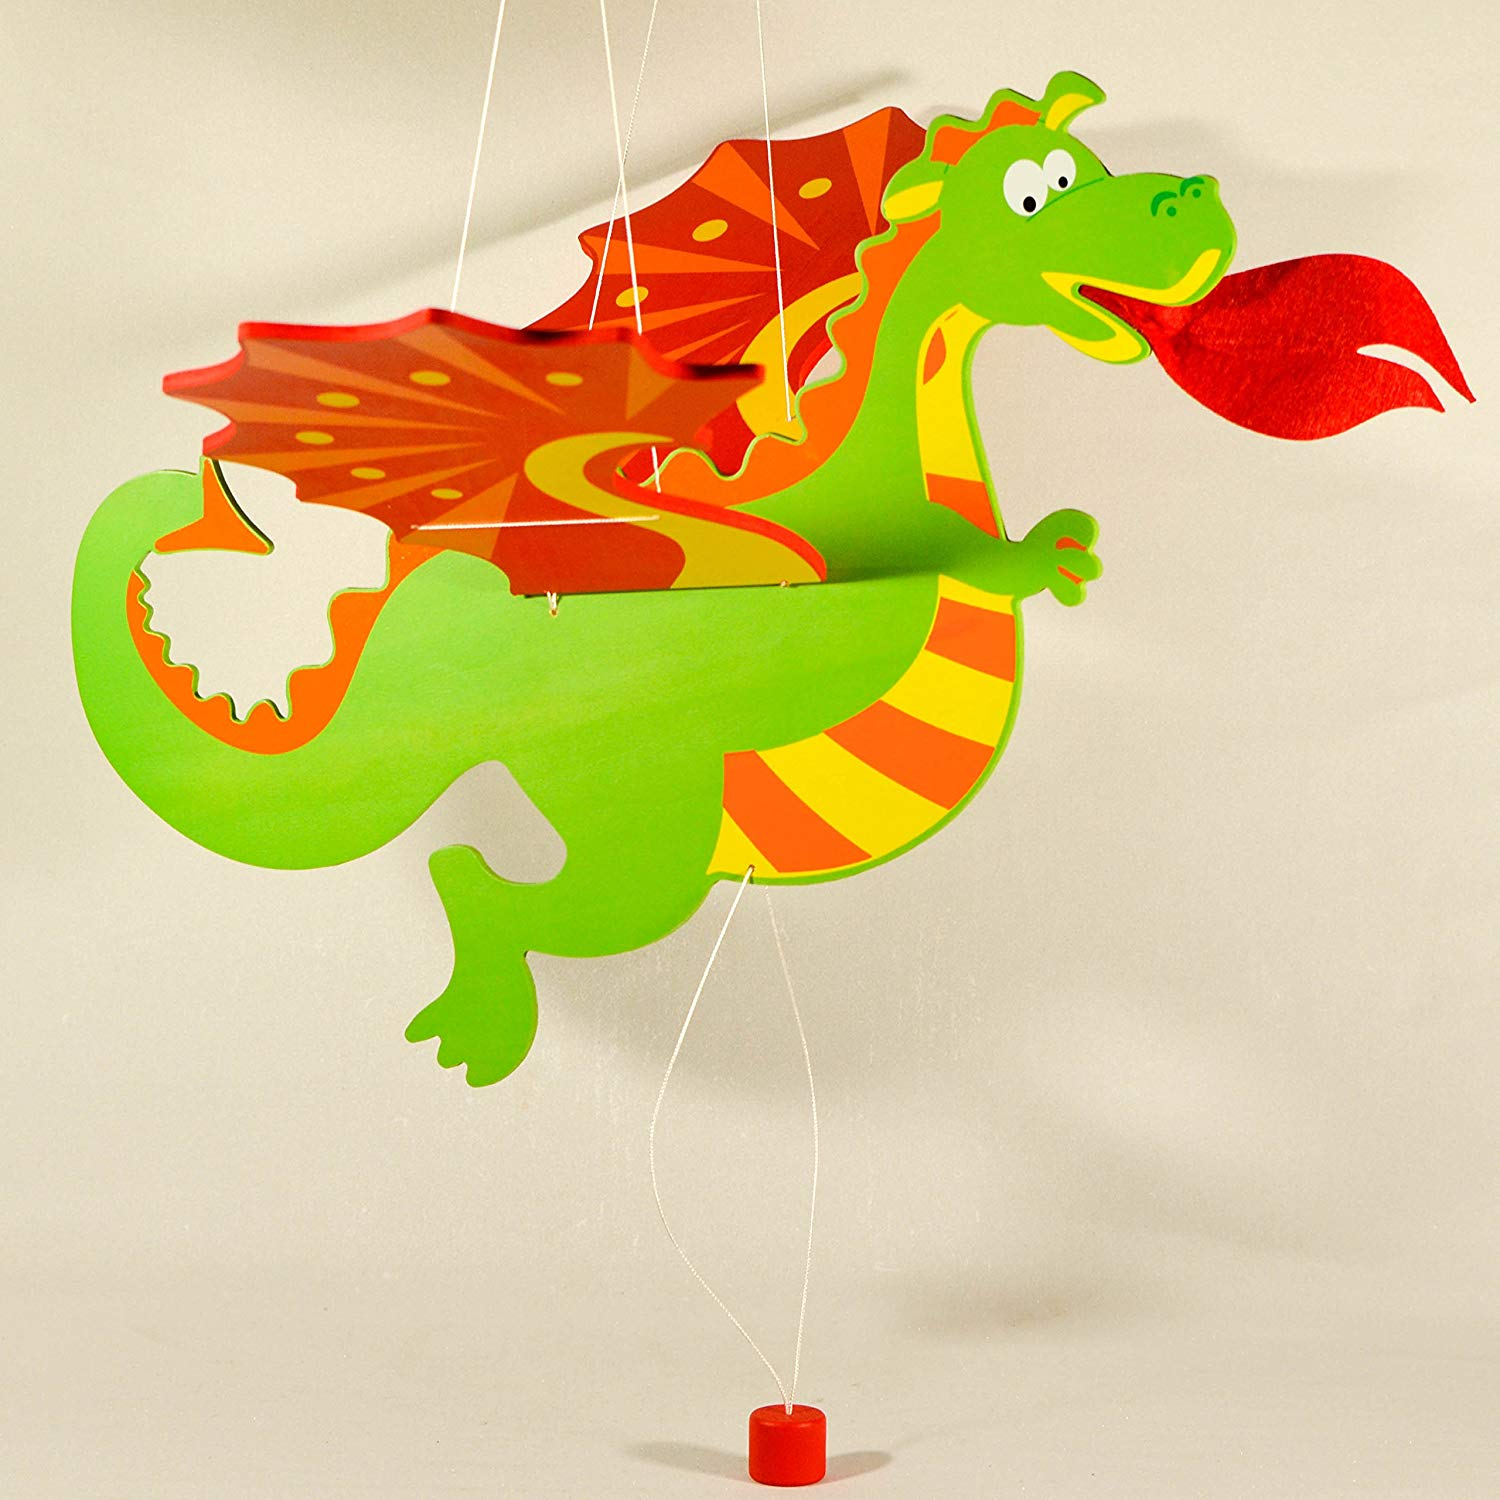 Wooden Hanging Mobile Dragon - Nursery Decor - Baby Mobile Ornament - Baby Room Decor - Novelty Dragon Decoration